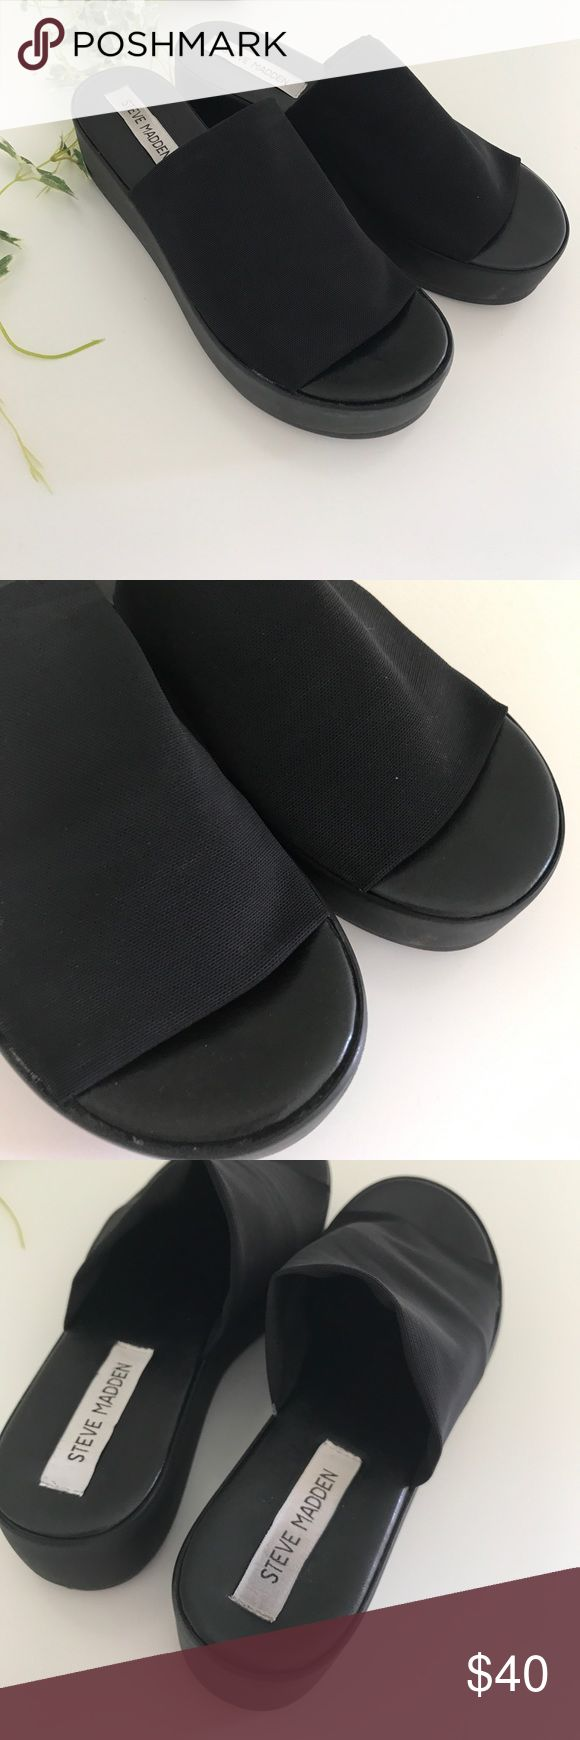 🔥 Steve Madden Platform Sandals 🔥 🔆 in excellent condition super clean inside and out 🔆tops and inside are in perfect condition  🔆bottoms have little dirt 🚫no trades Steve Madden Shoes Sandals